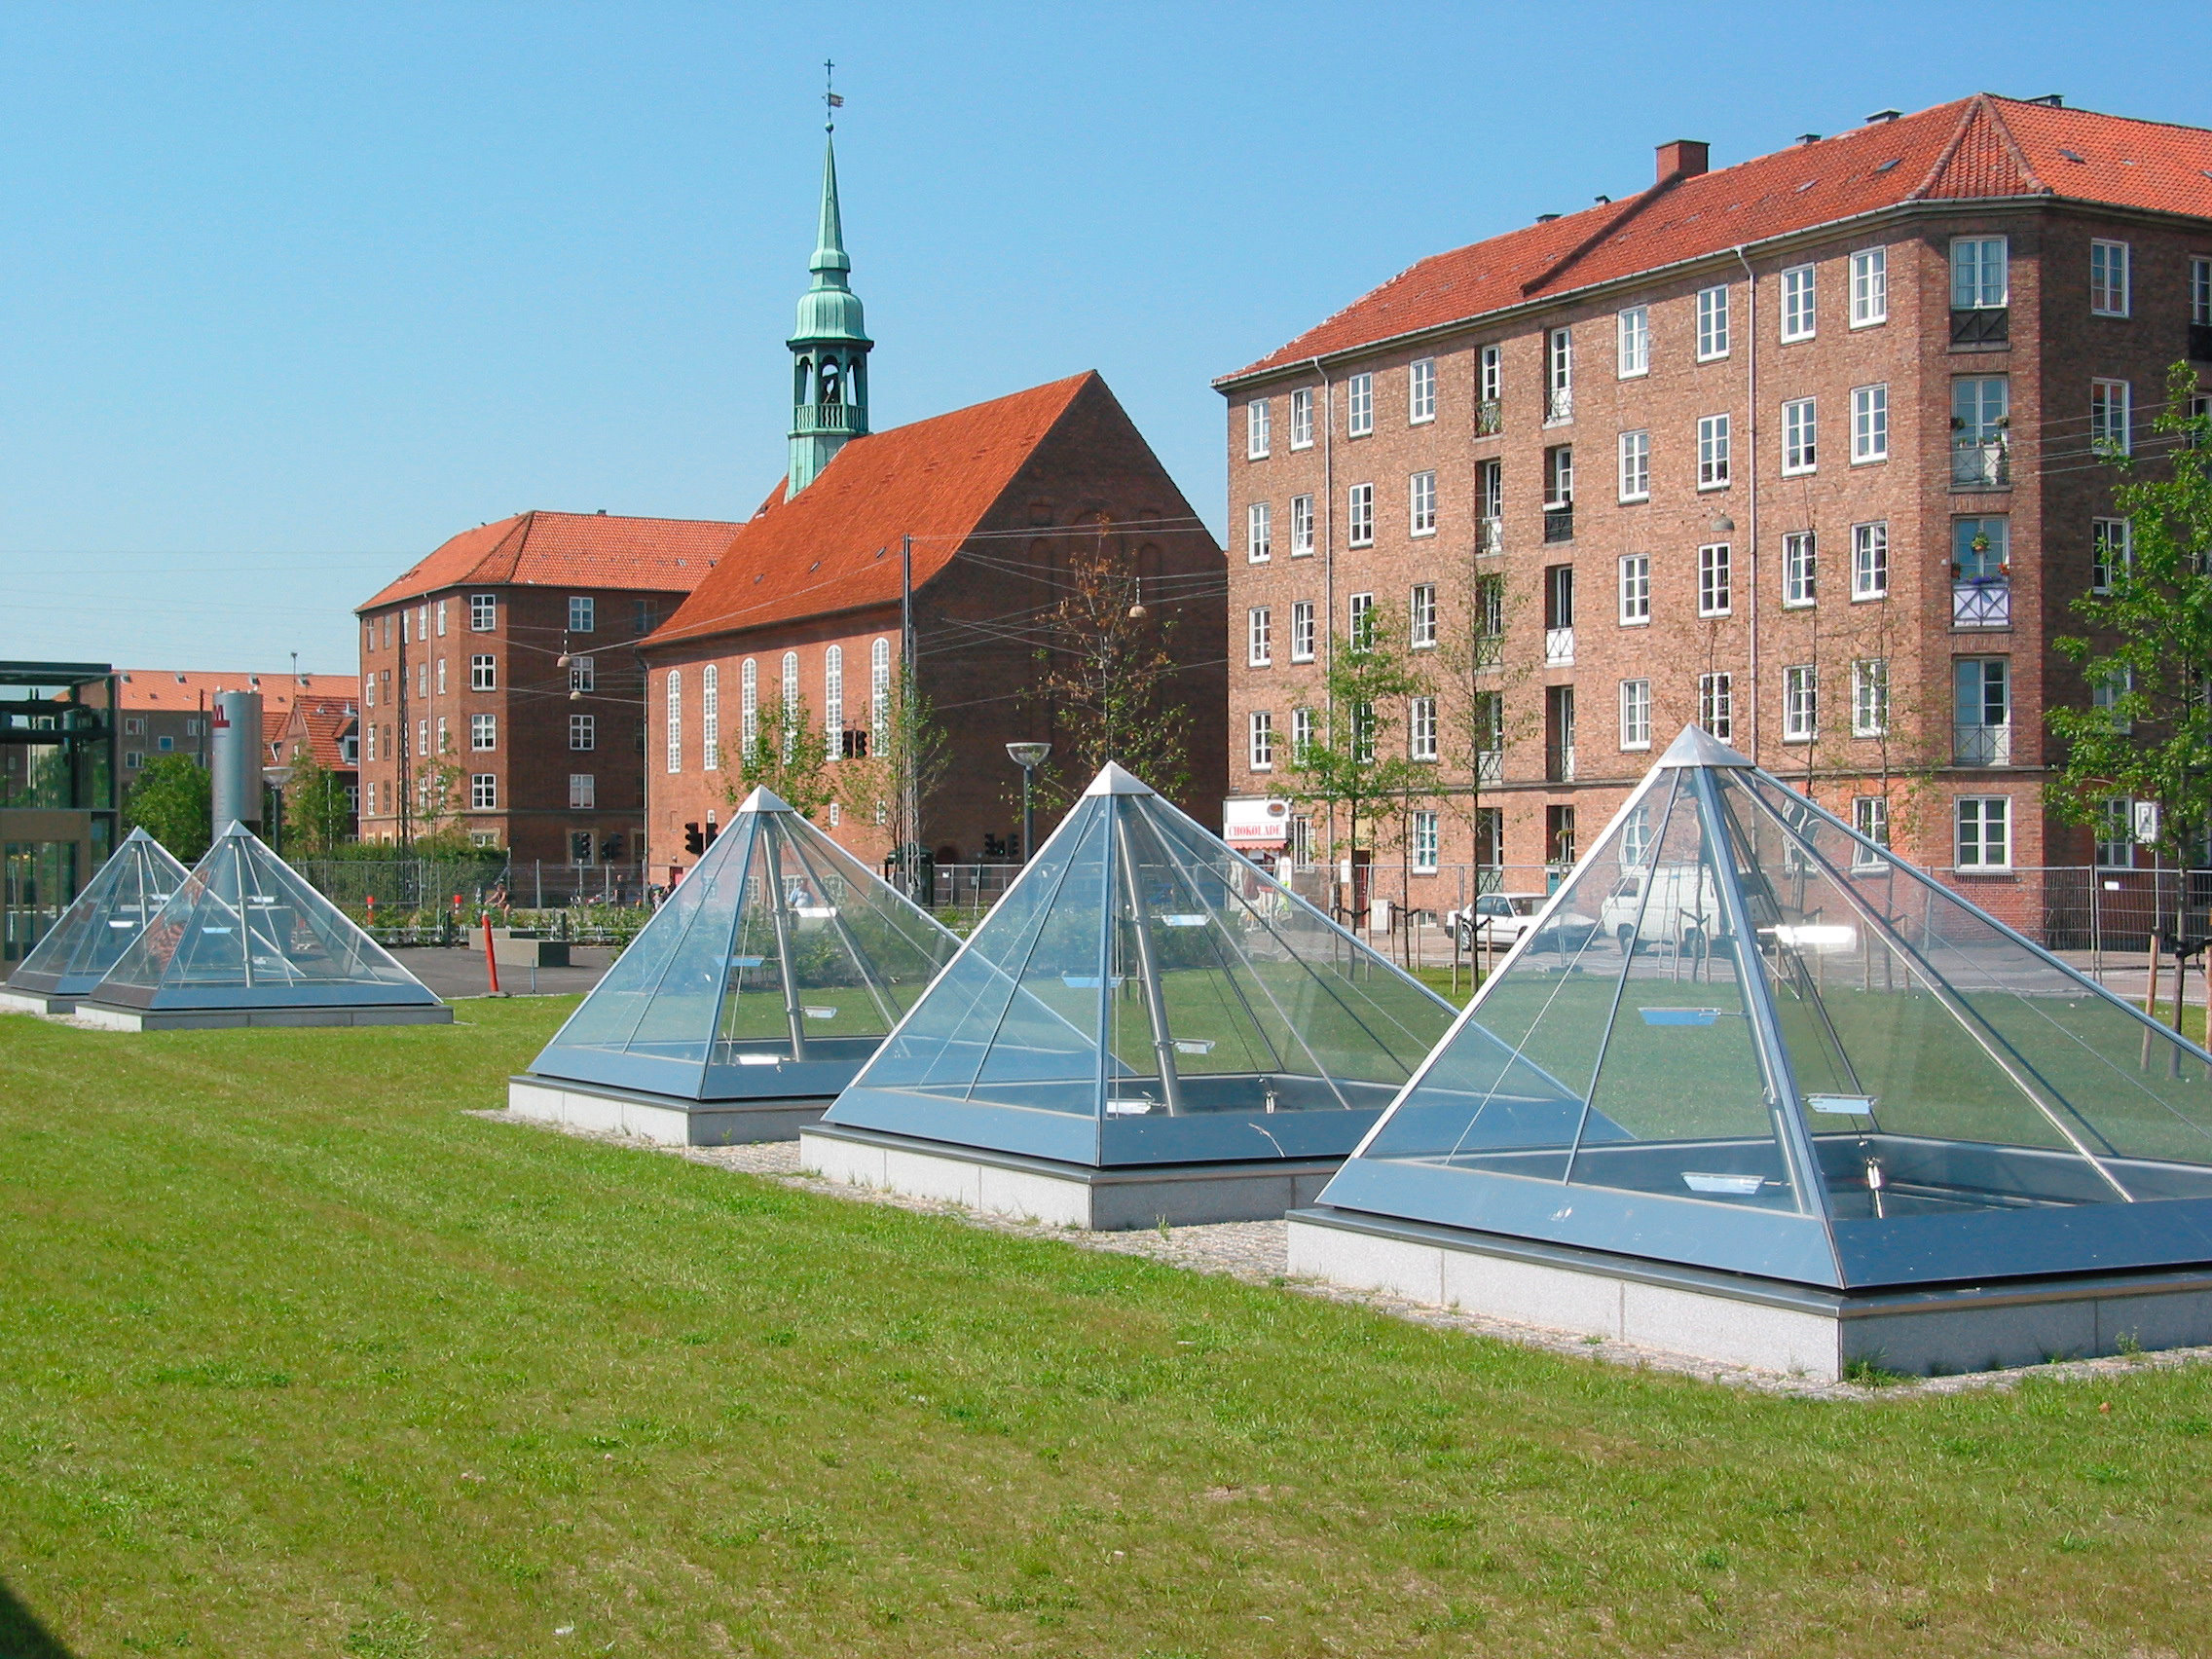 Glass prism pyramids in a grass lawn in front of historic brick buildings